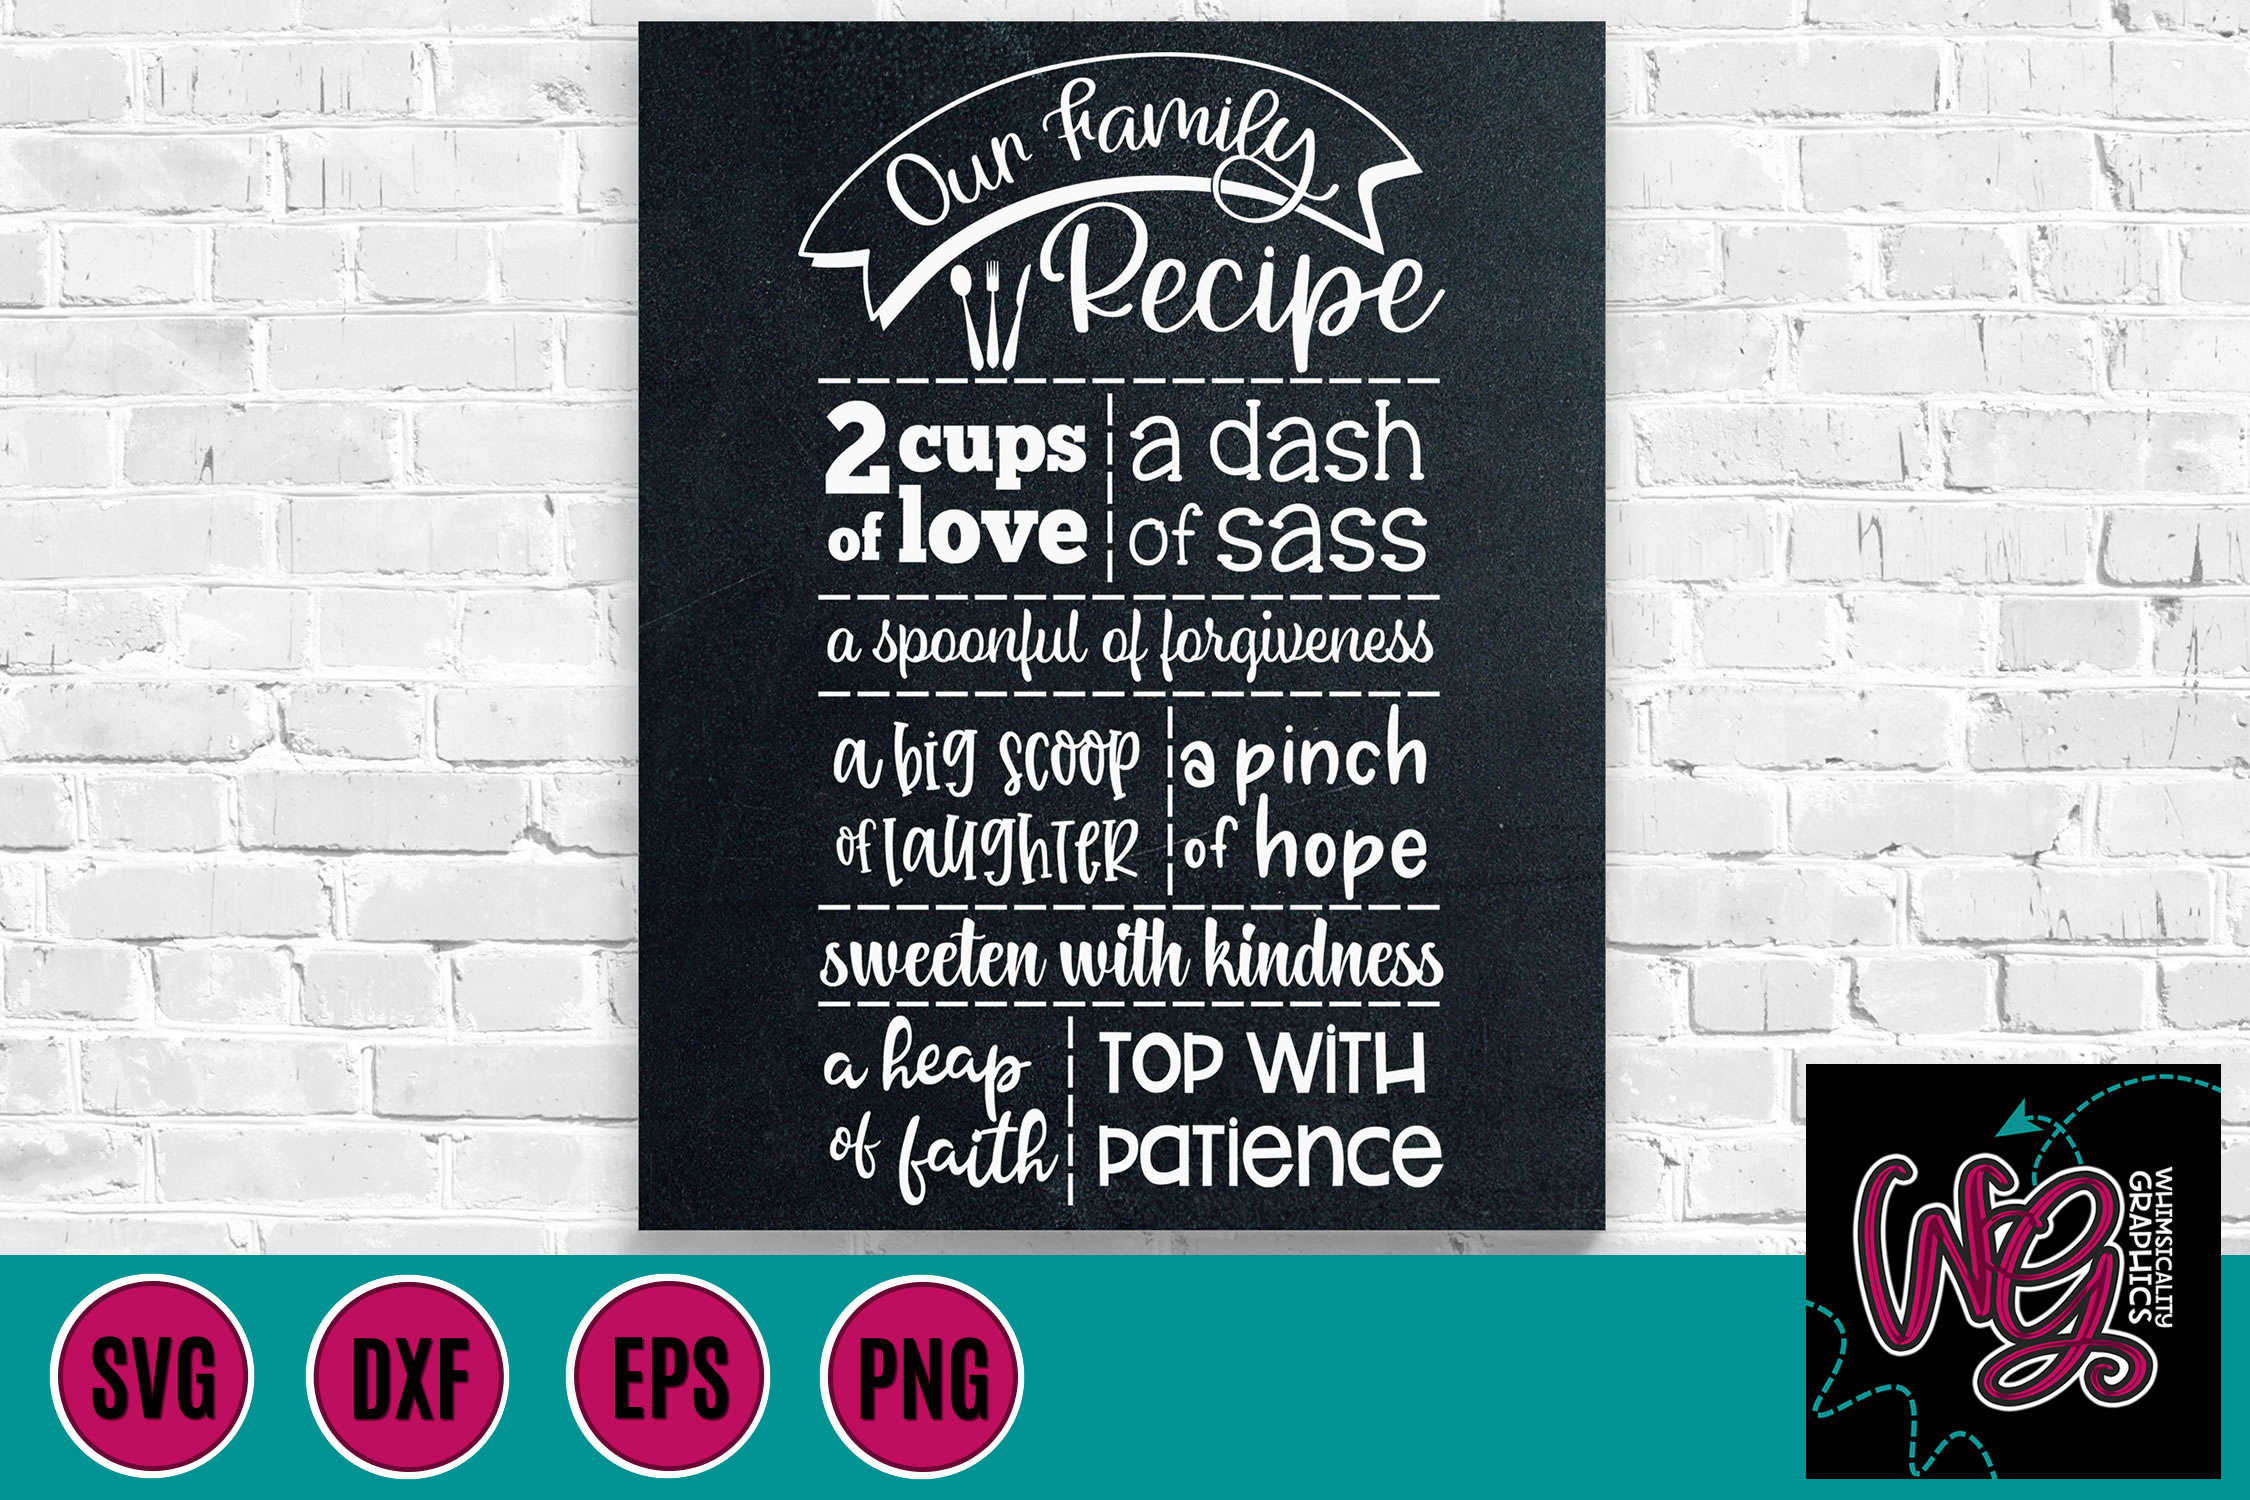 Our Family Recipe Kitchen Sign SVG DXF PNG EPS example image 1